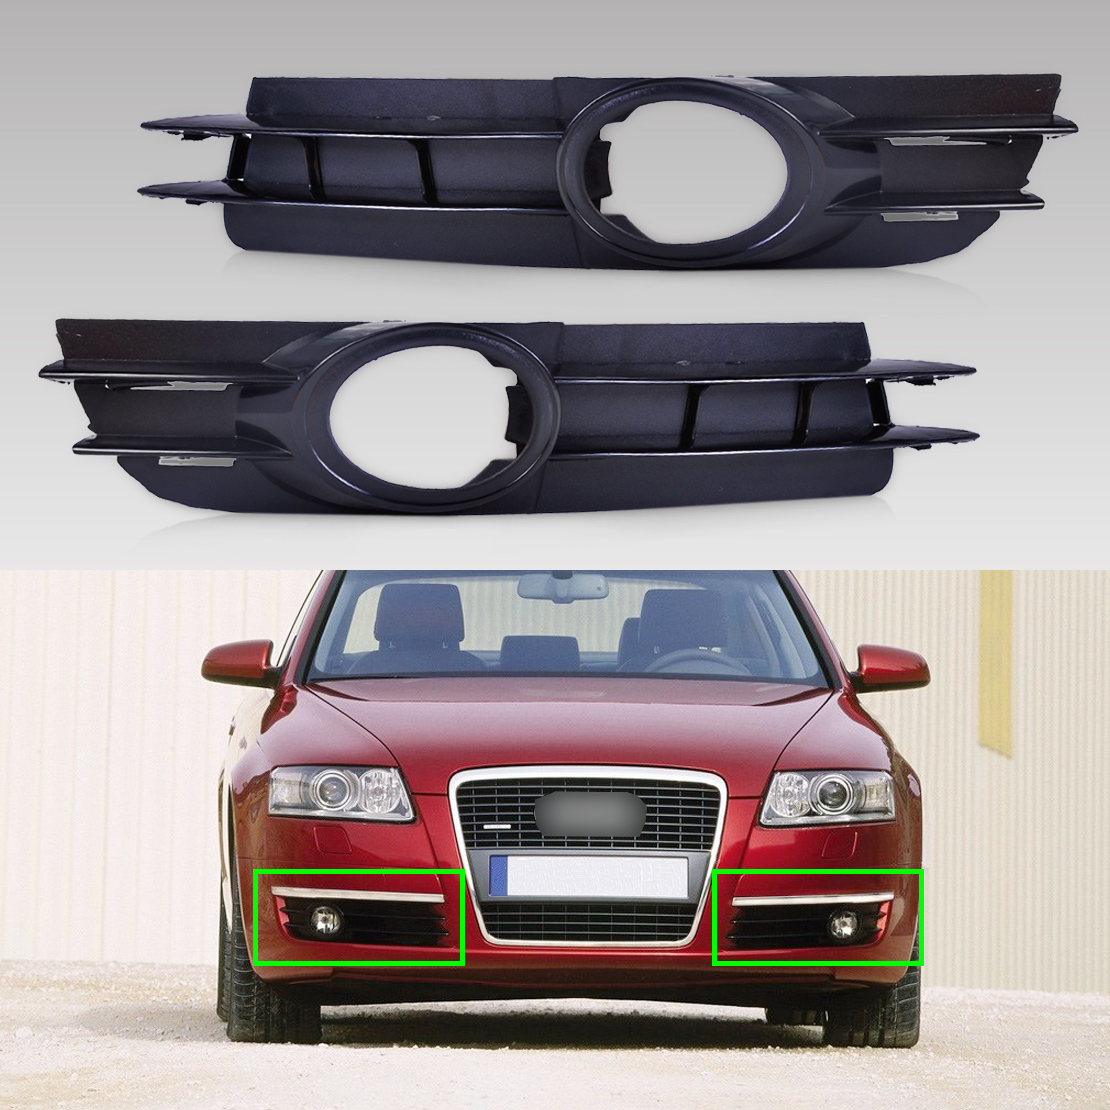 DWCX 4F0807681A / 4F0807682A 2PCS Front Left + Right Fog Light Lamp Grill Grille For Audi A6 / A6 Quattro C6 2005 2006 2007 2008 dwcx 2pcs front fog light lamp cover grille grill 2pcs lamp kit for ford fiesta 2014